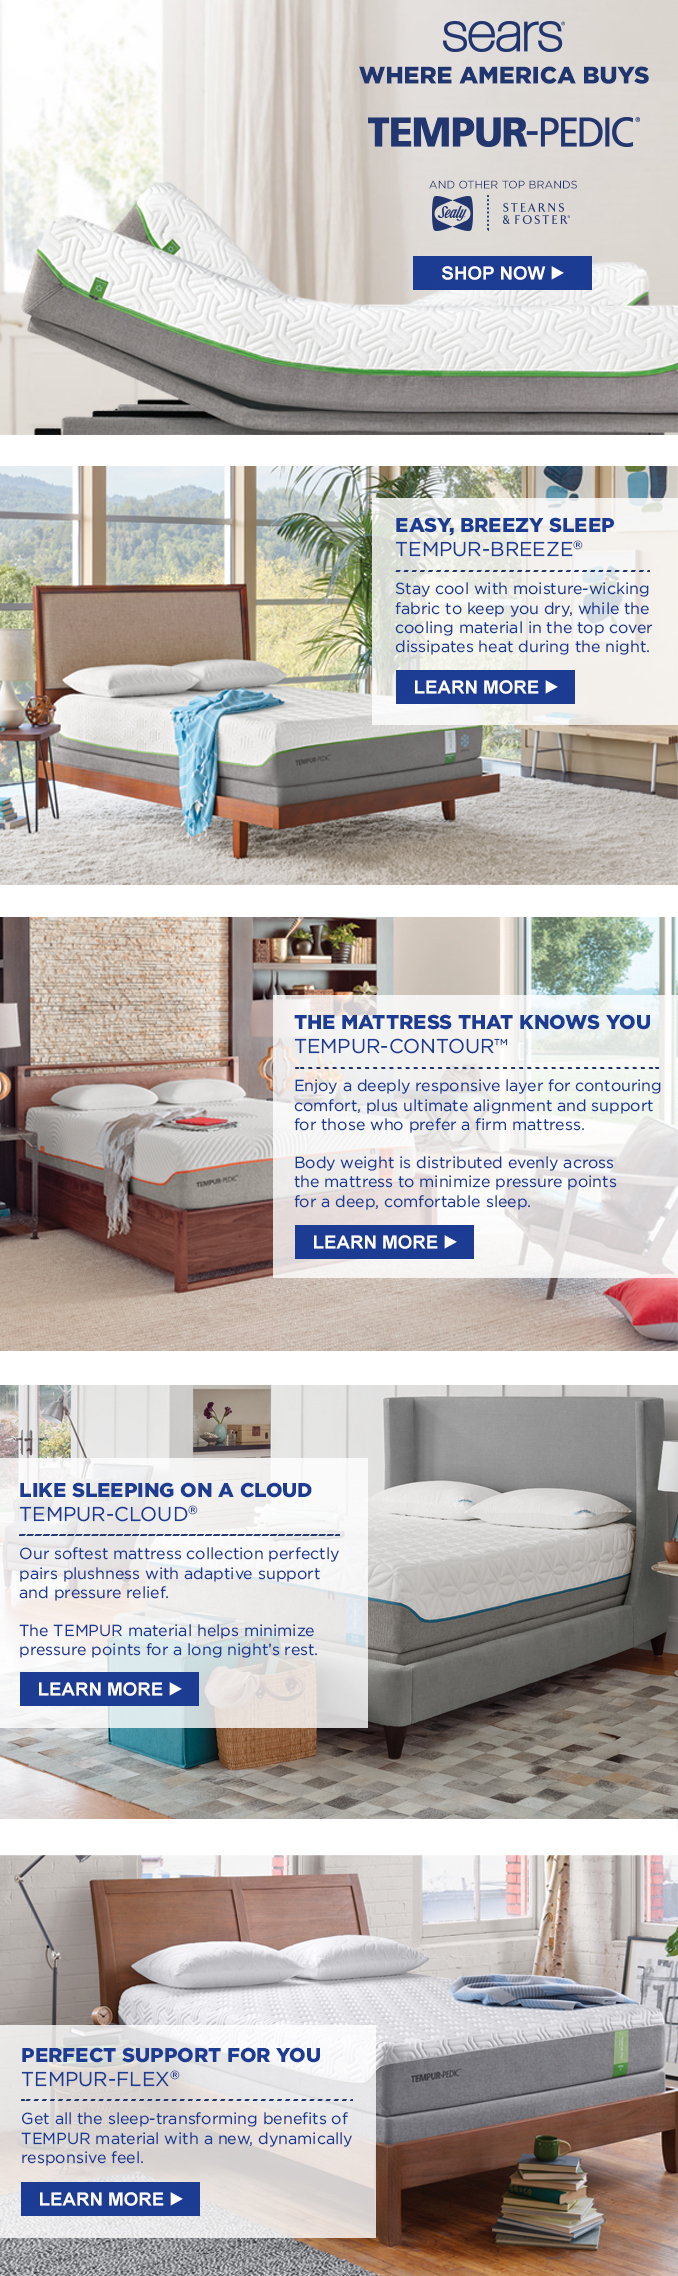 Sears Mattress Email